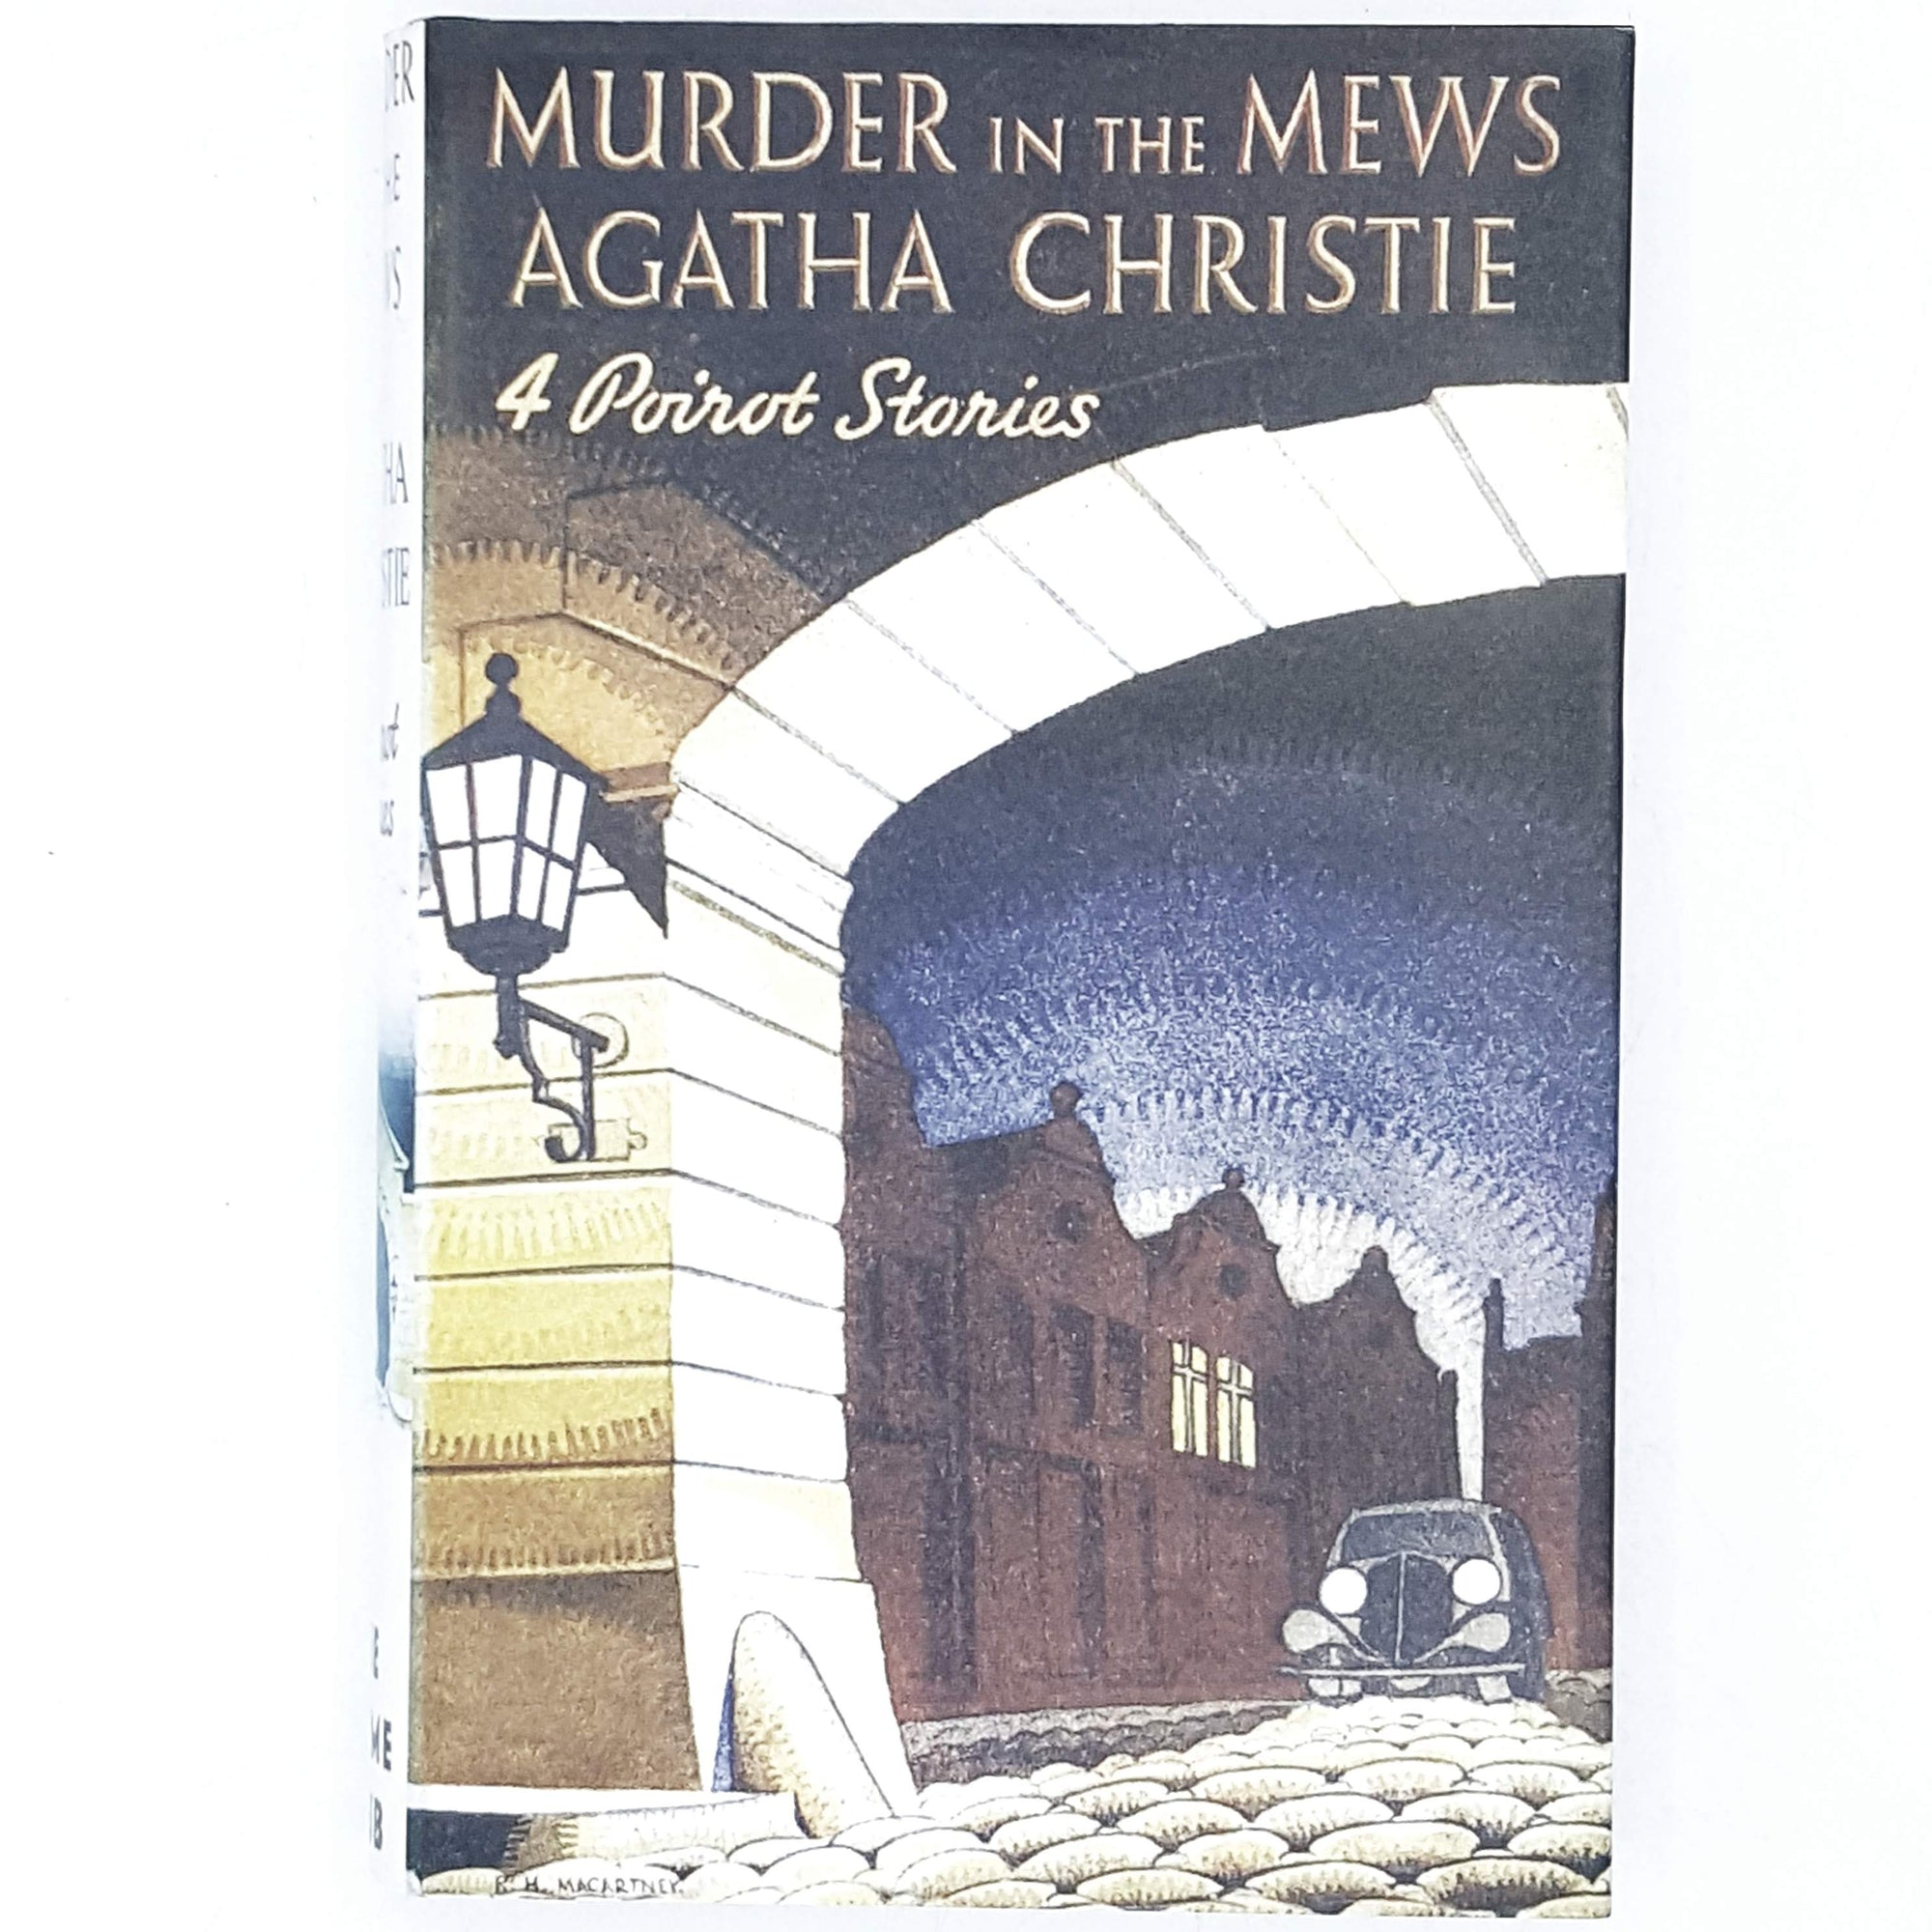 Agatha Christie's Murder in the Mews